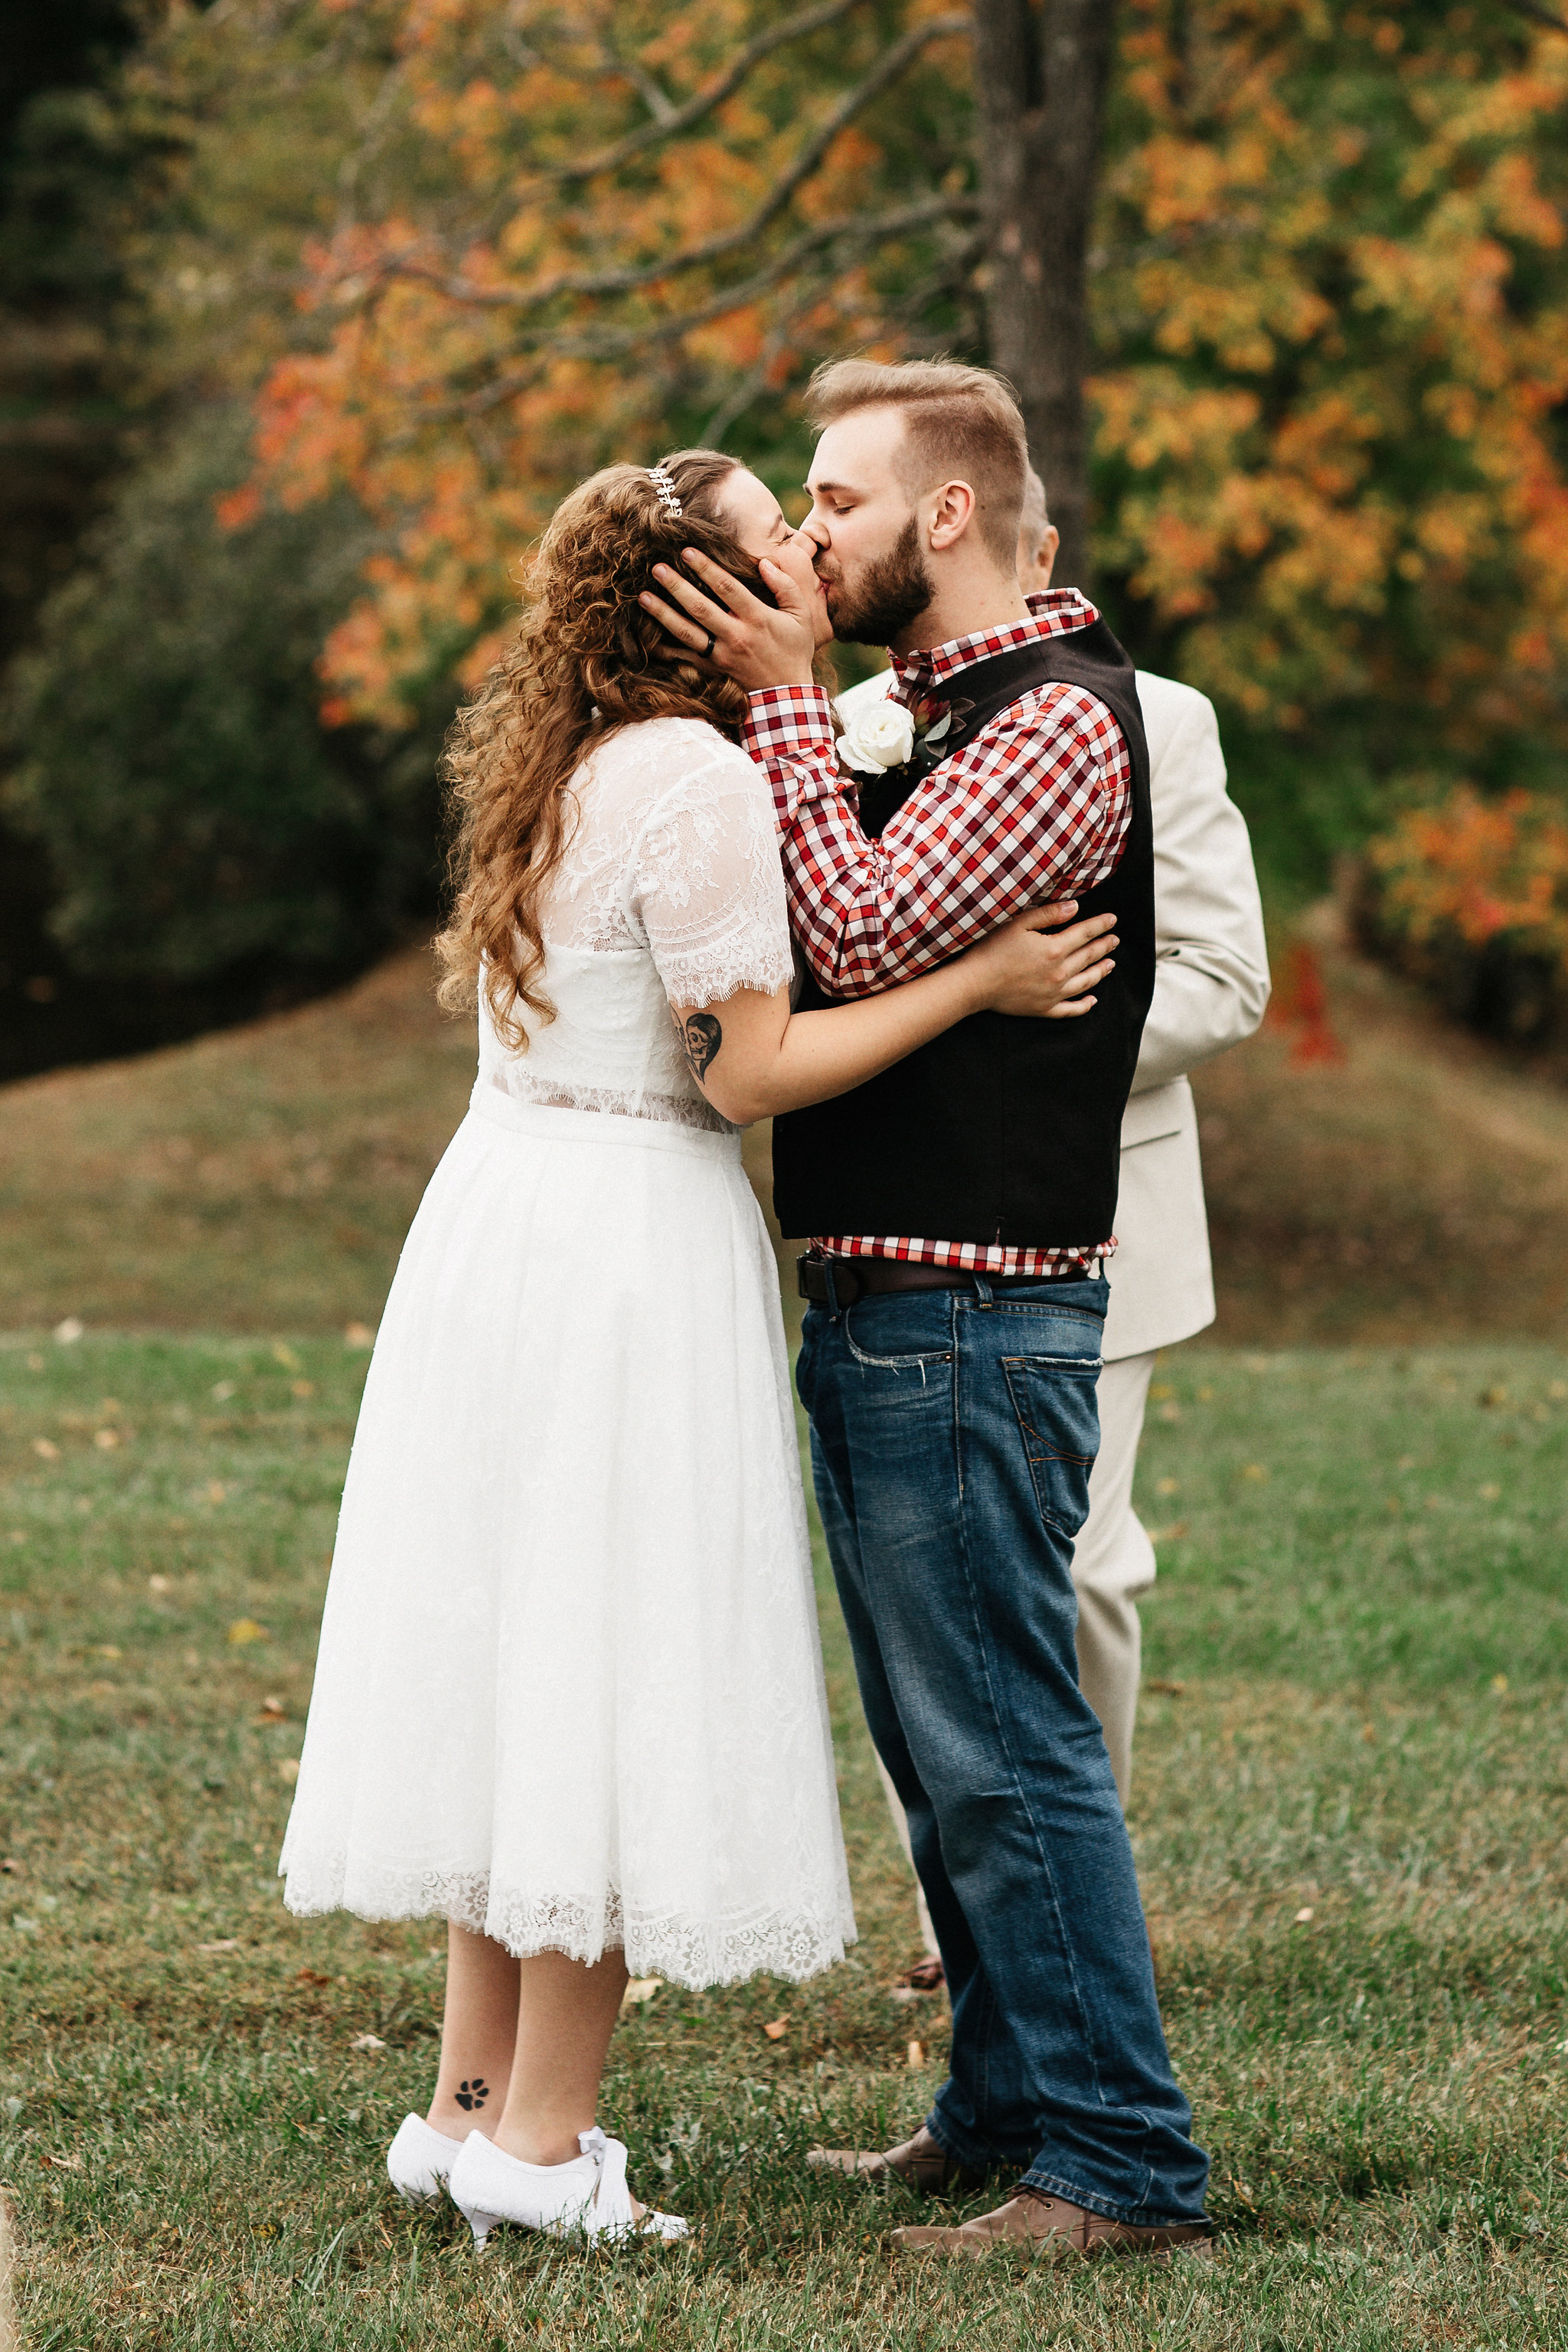 Caitlin&CodyMarried2017-11-03at19.19.38PM8.jpg